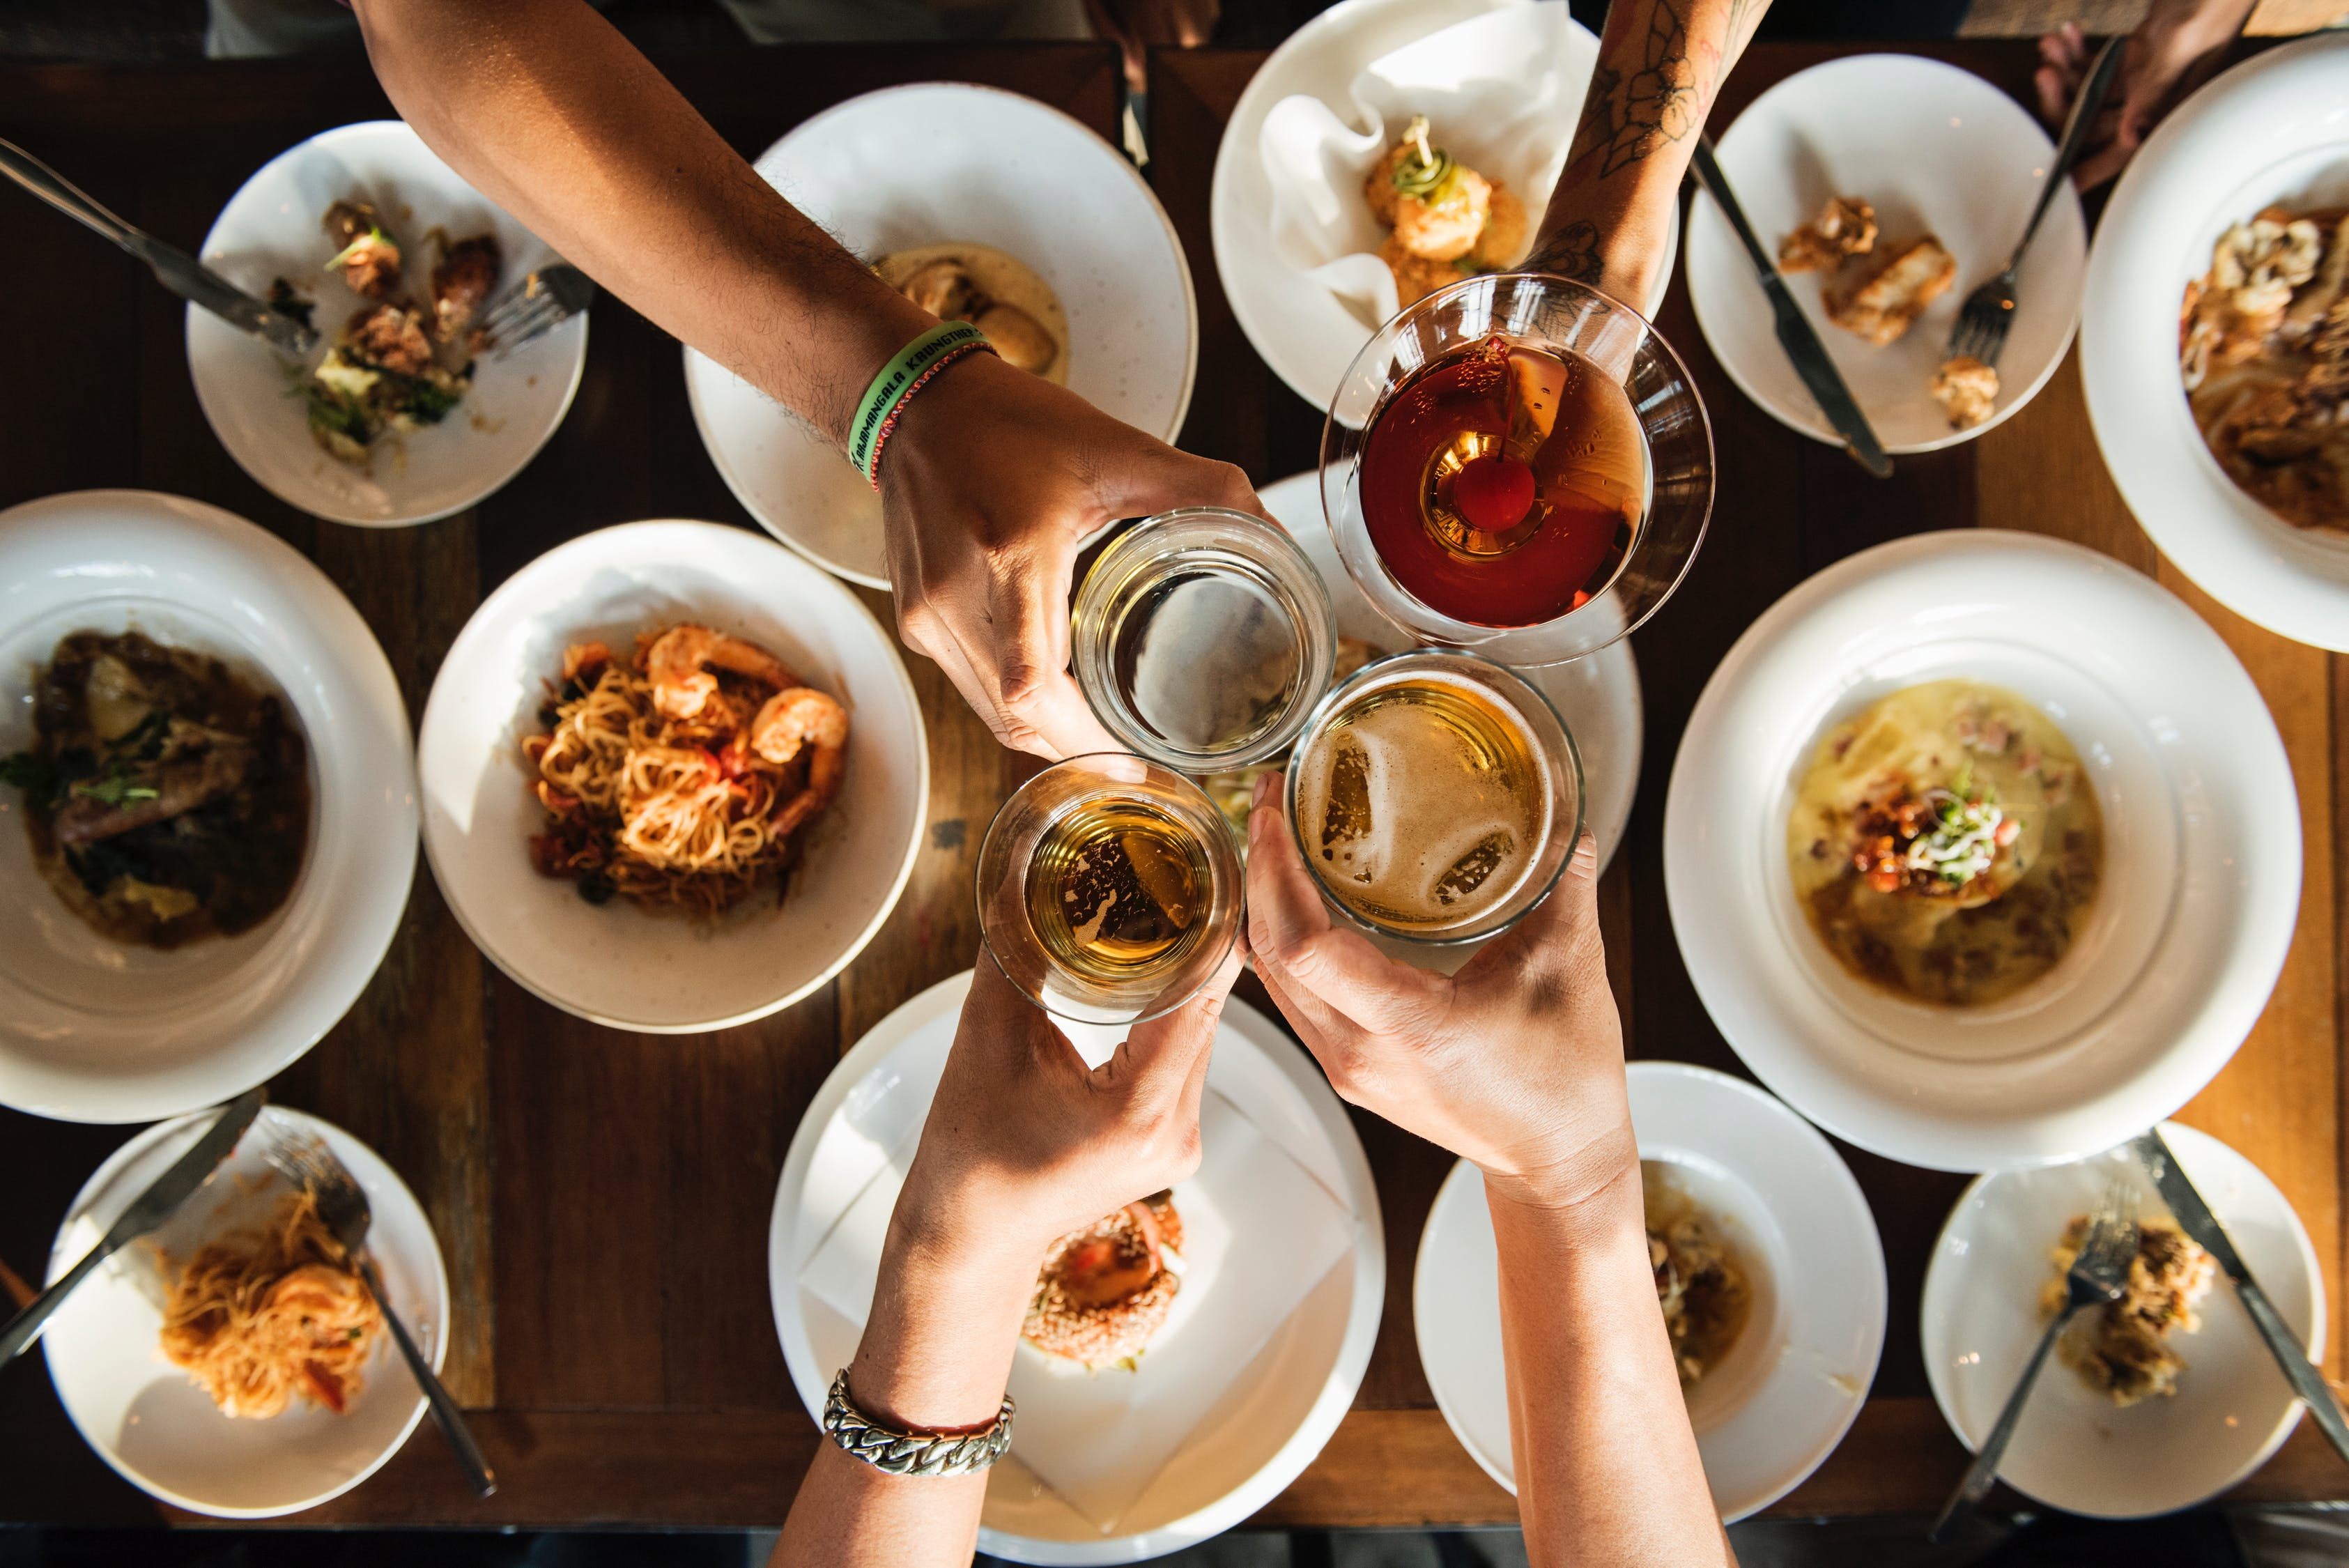 There's more than just a variety of fare at the dinner table these days, differing opinions are frequently finding a place too.